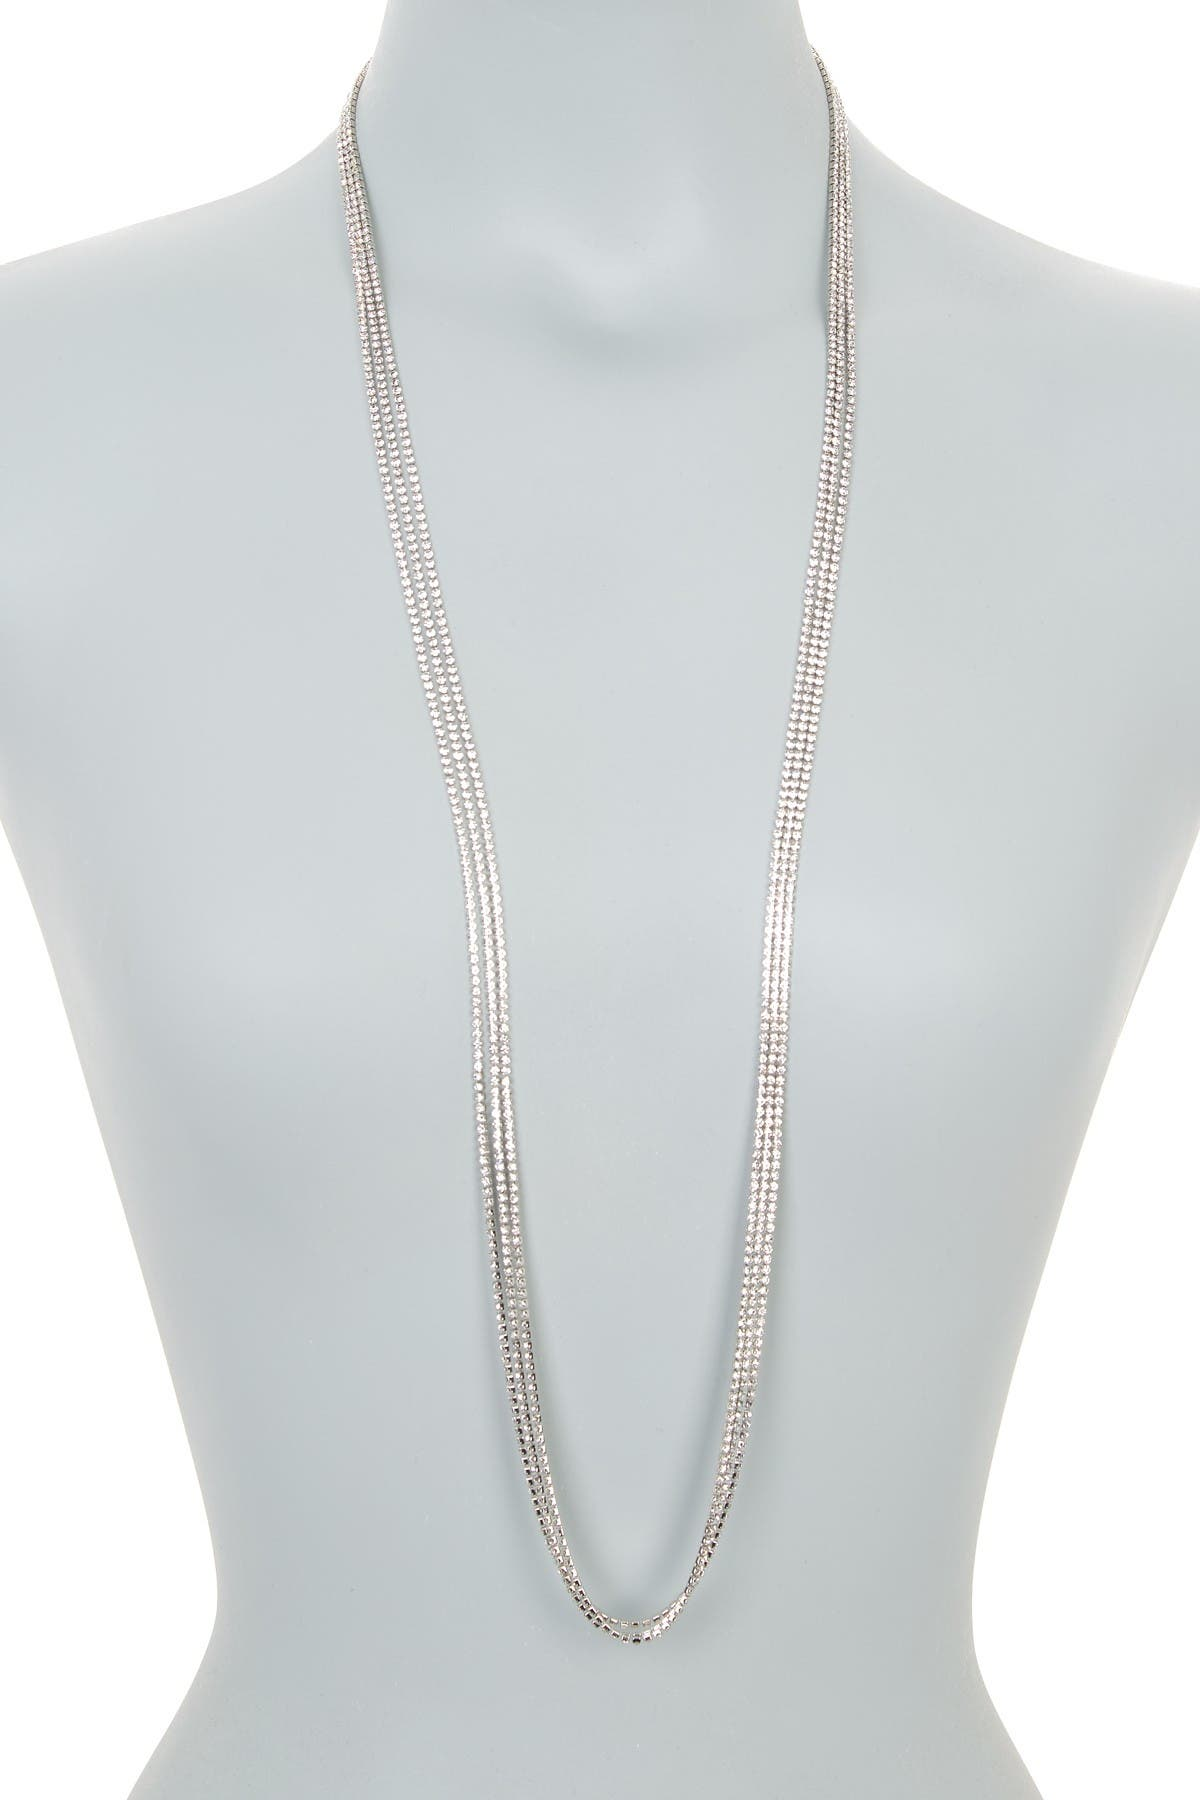 Image of CRISTABELLE Rhinstone 3-Strand Long Necklace